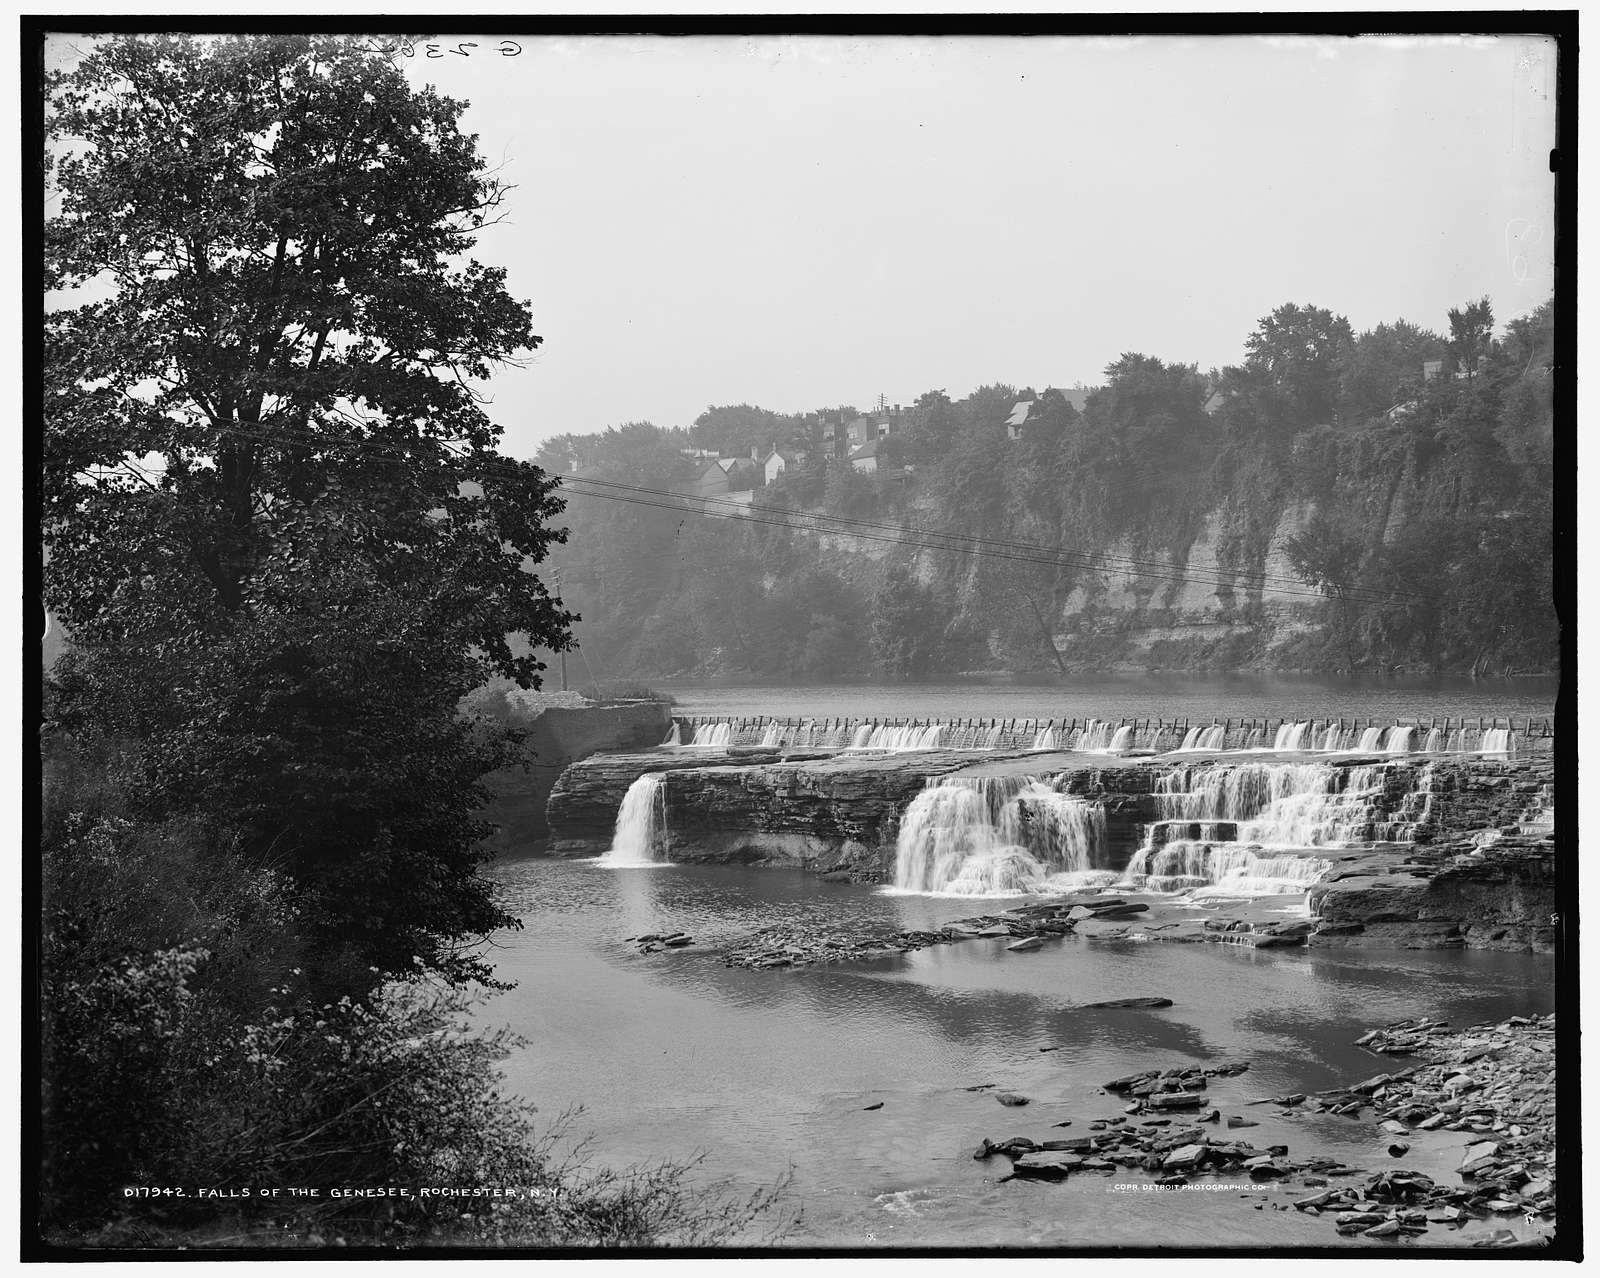 Falls of the Genesee, Rochester, N.Y